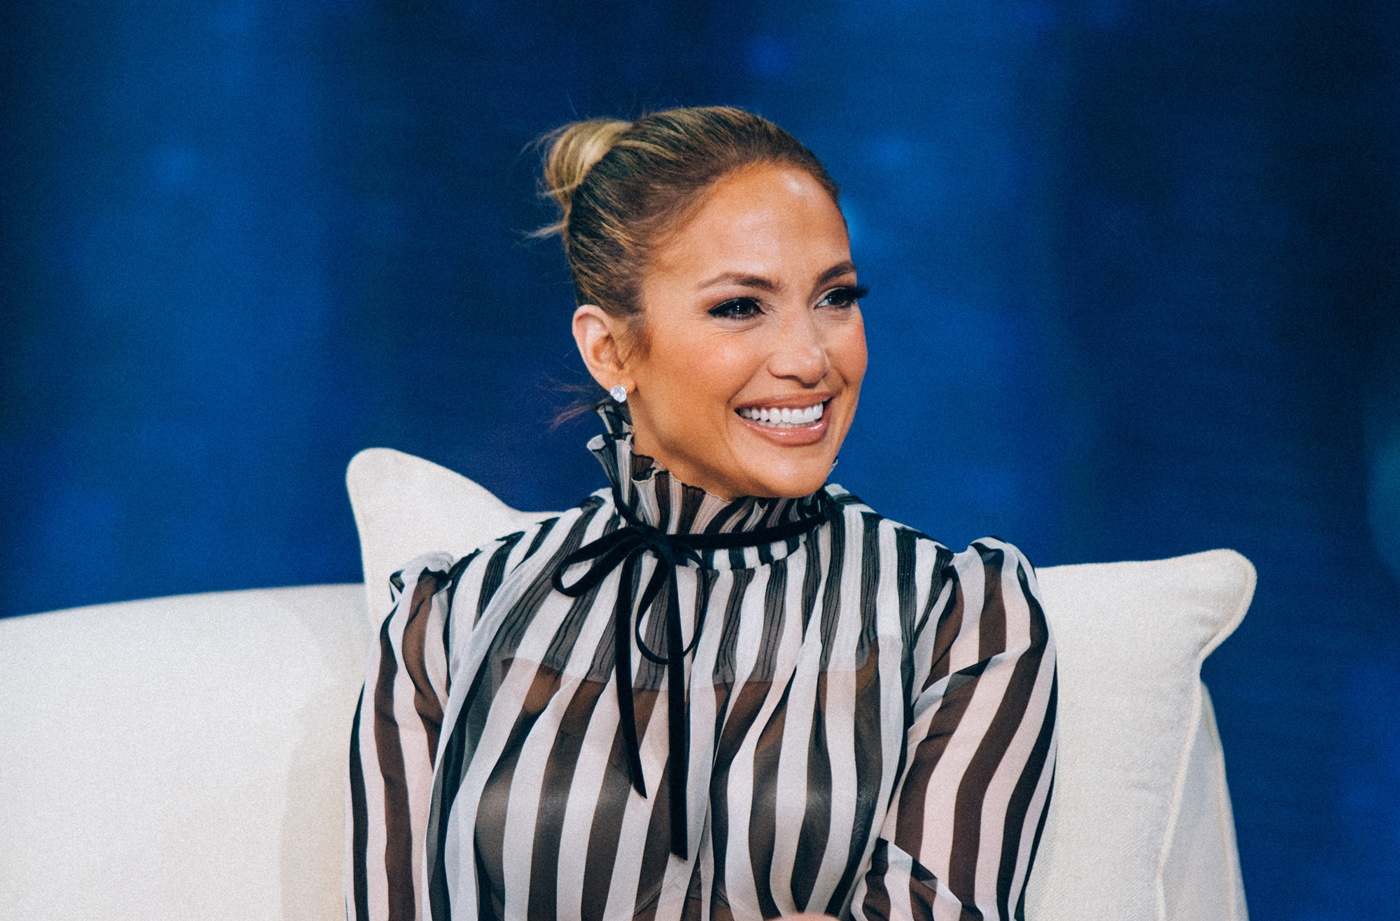 Thumbnail for Jennifer Lopez's 5 healthy habits that help her look totally ageless